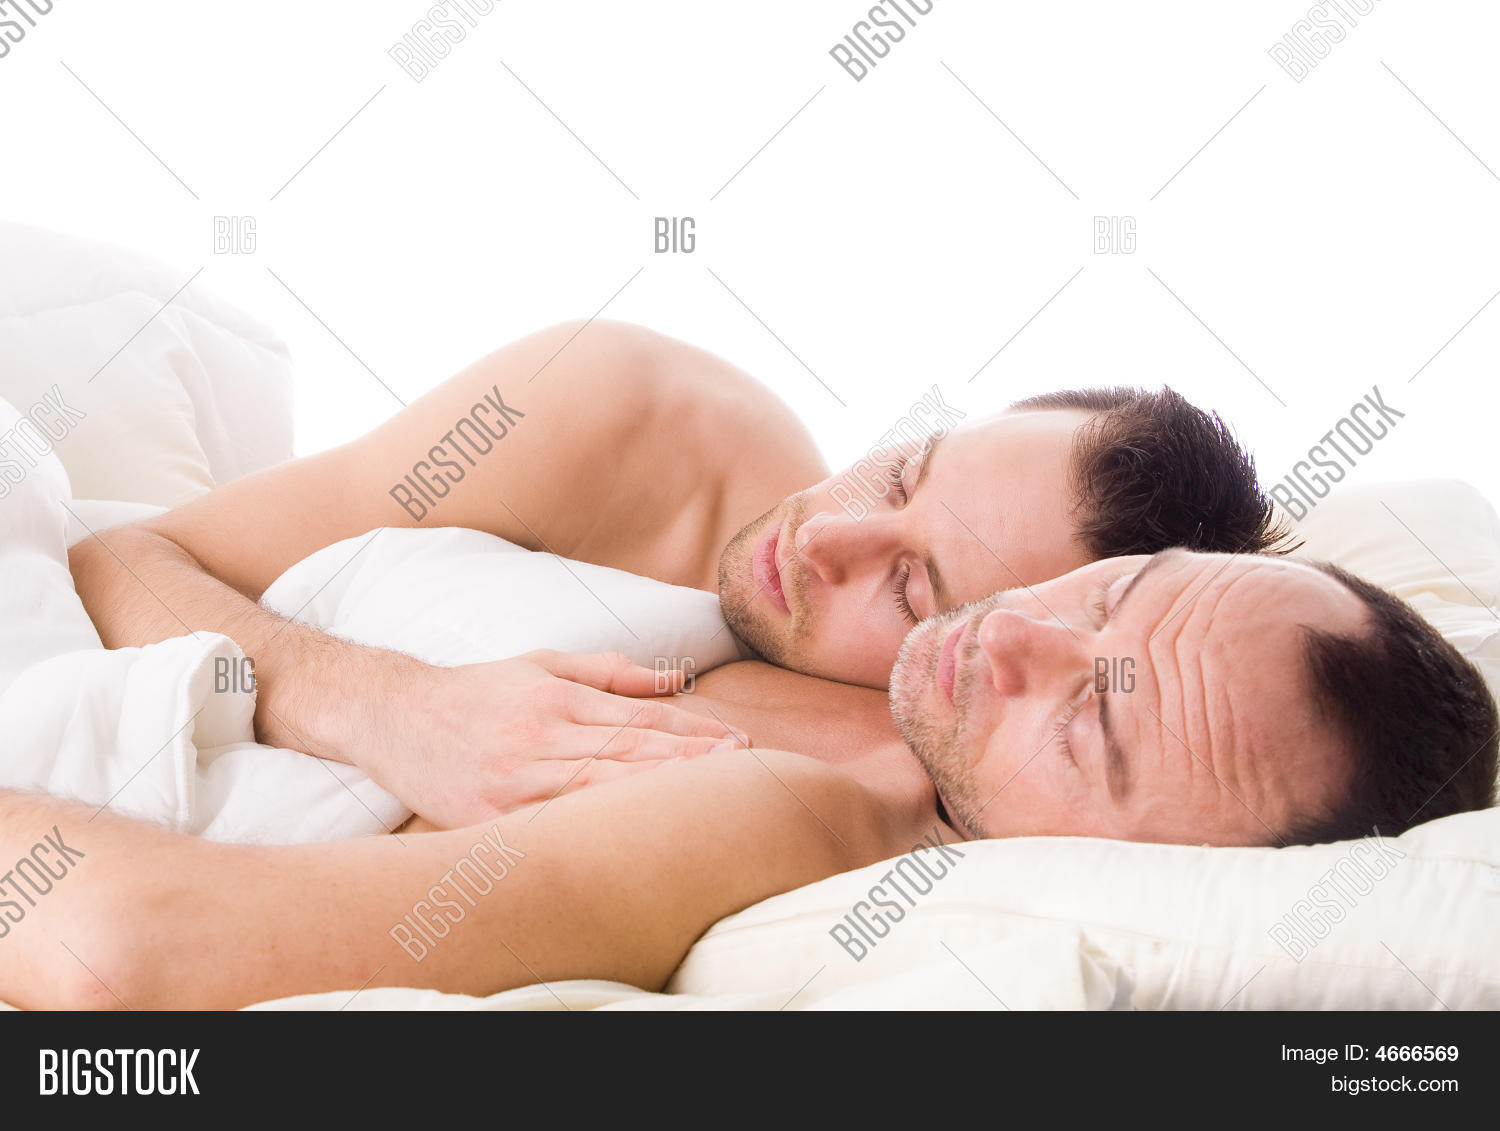 adult,affair,background,bed,bedding,bedroom,bedtime,boyfriend,bright,caring,caucasian,colorful,conceptual,copy-space,couple,cuddling,dreaming,duo,fresh,freshness,friends,gay,gay men,healthy,homo,homosexual,hugging,lay-down,lifestyle,lovers,loving,male,man,passion,pillow,portrait,relation,resting,romantic,sensuality,sleeping,studio-shot,together,two,wellbeing,wellness,white